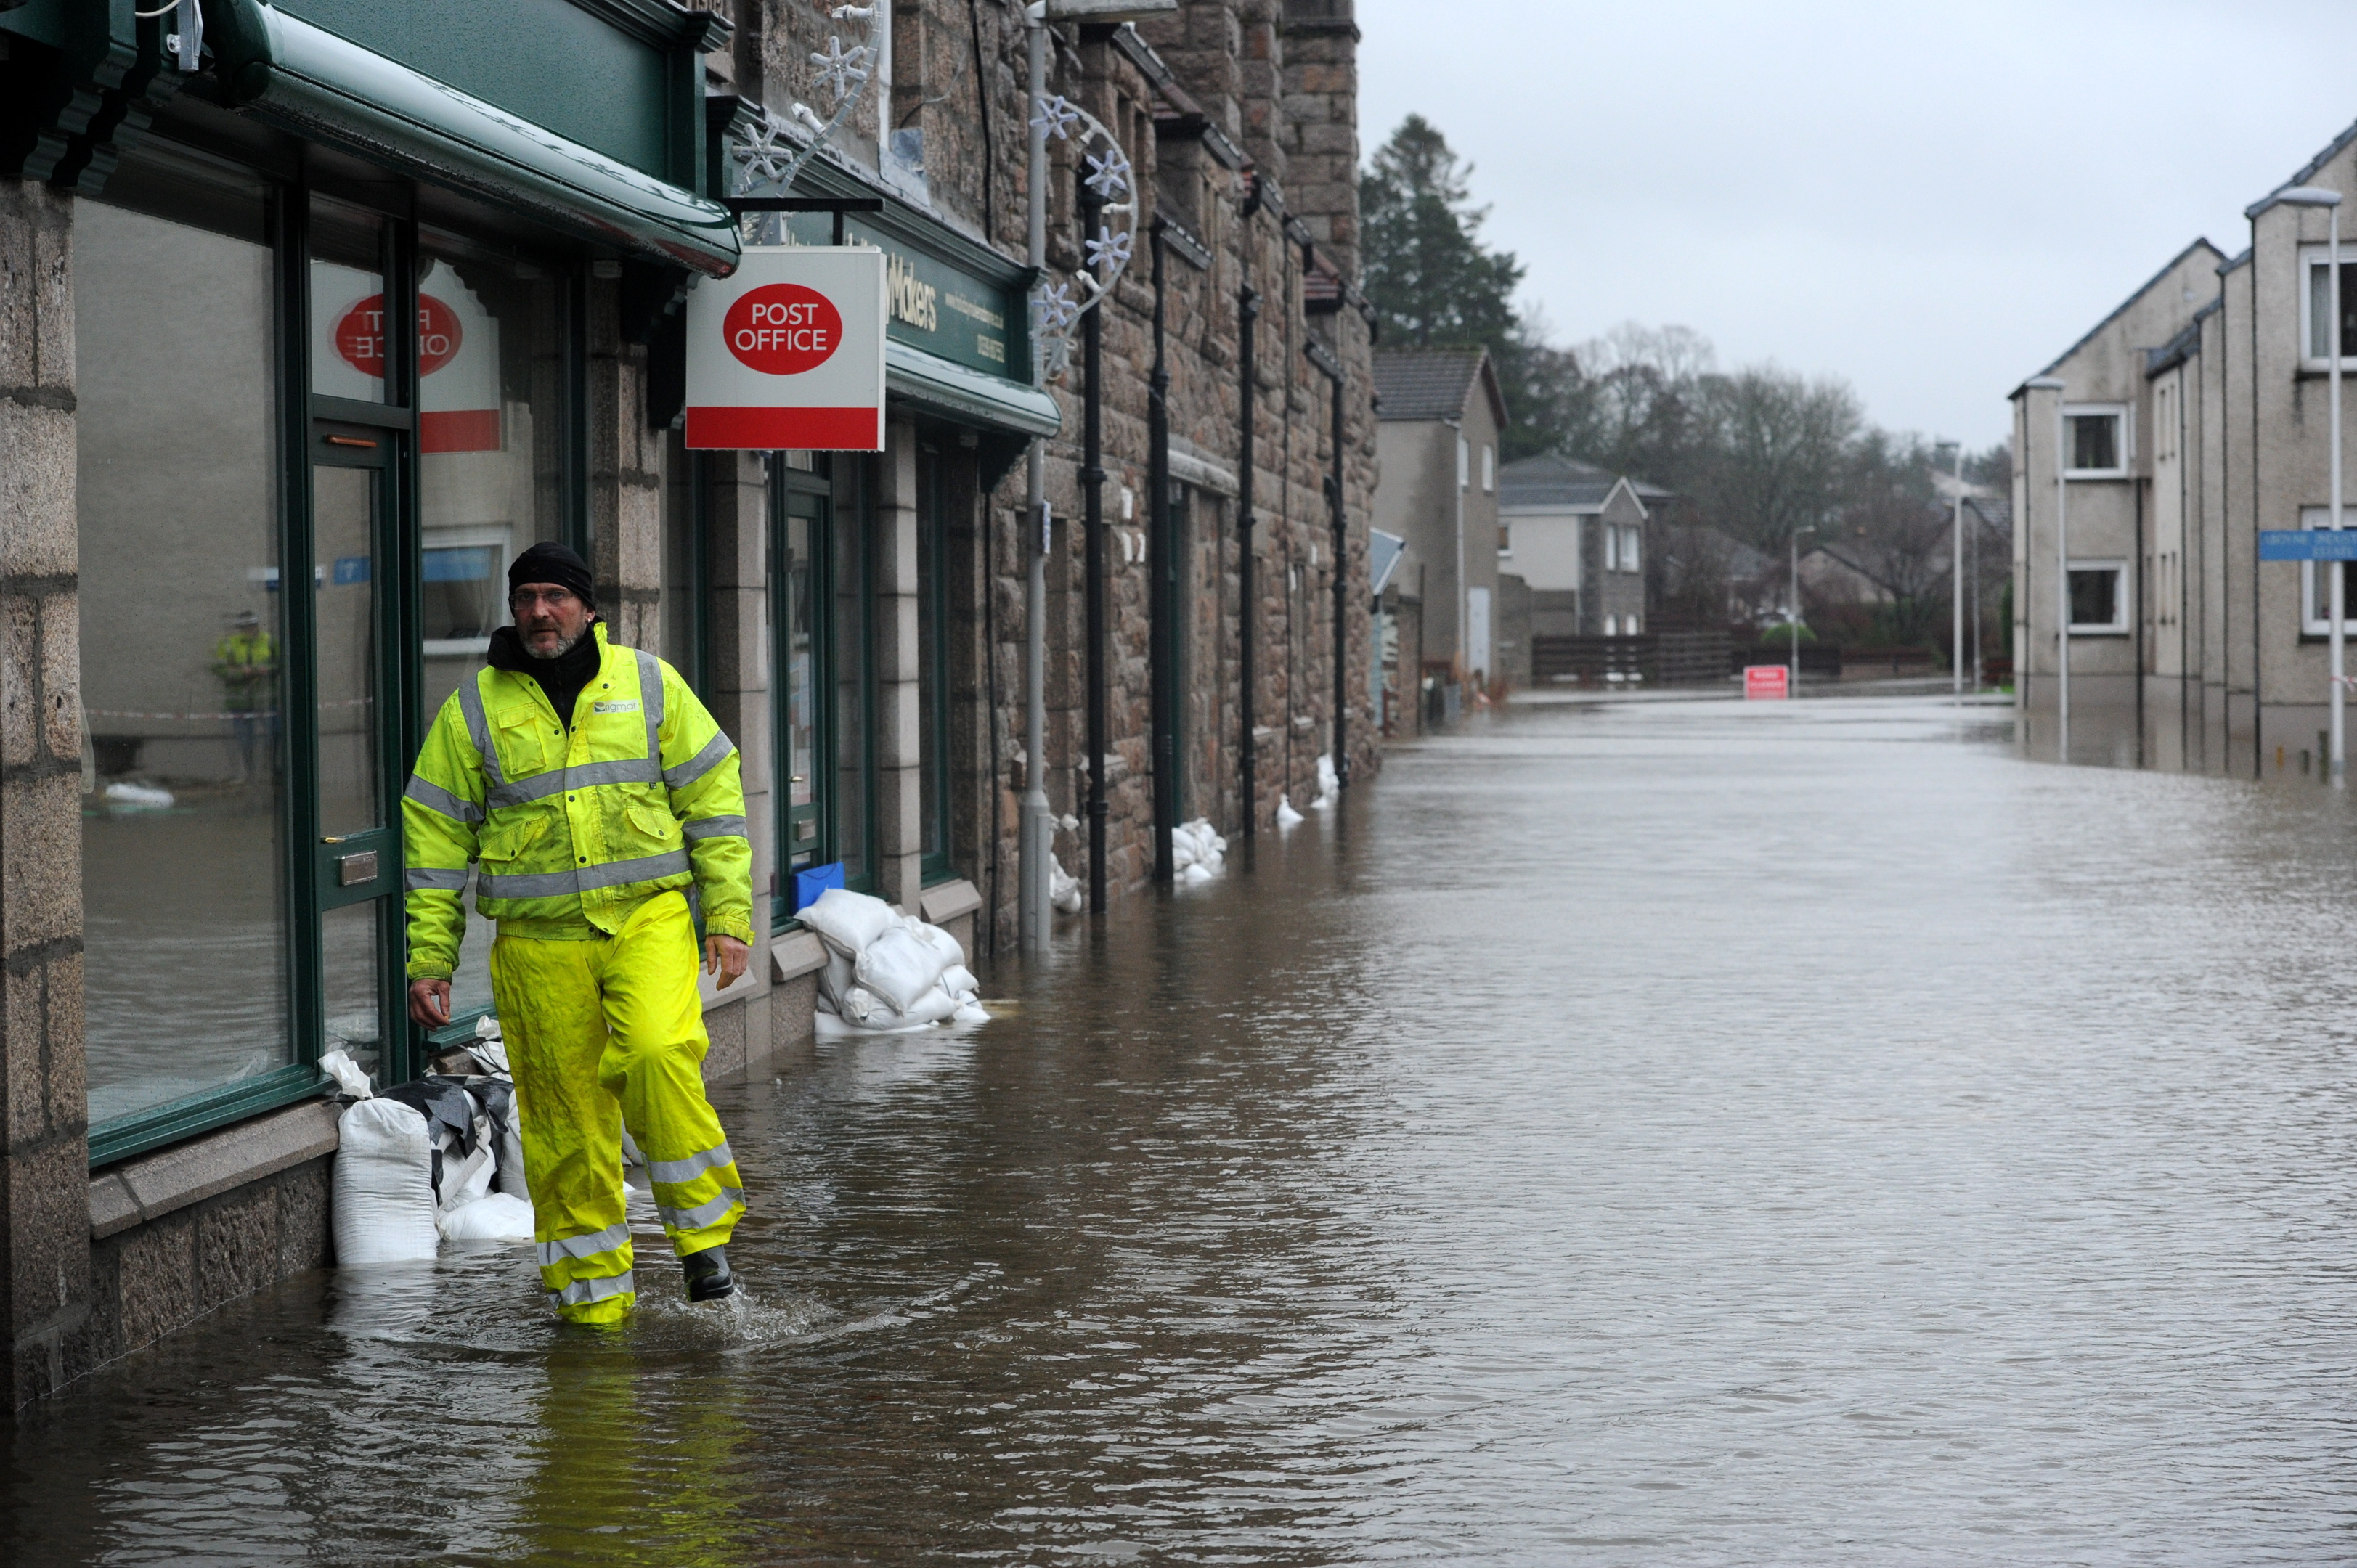 Six days into the month, Aboyne had already seen its wettest January on record.